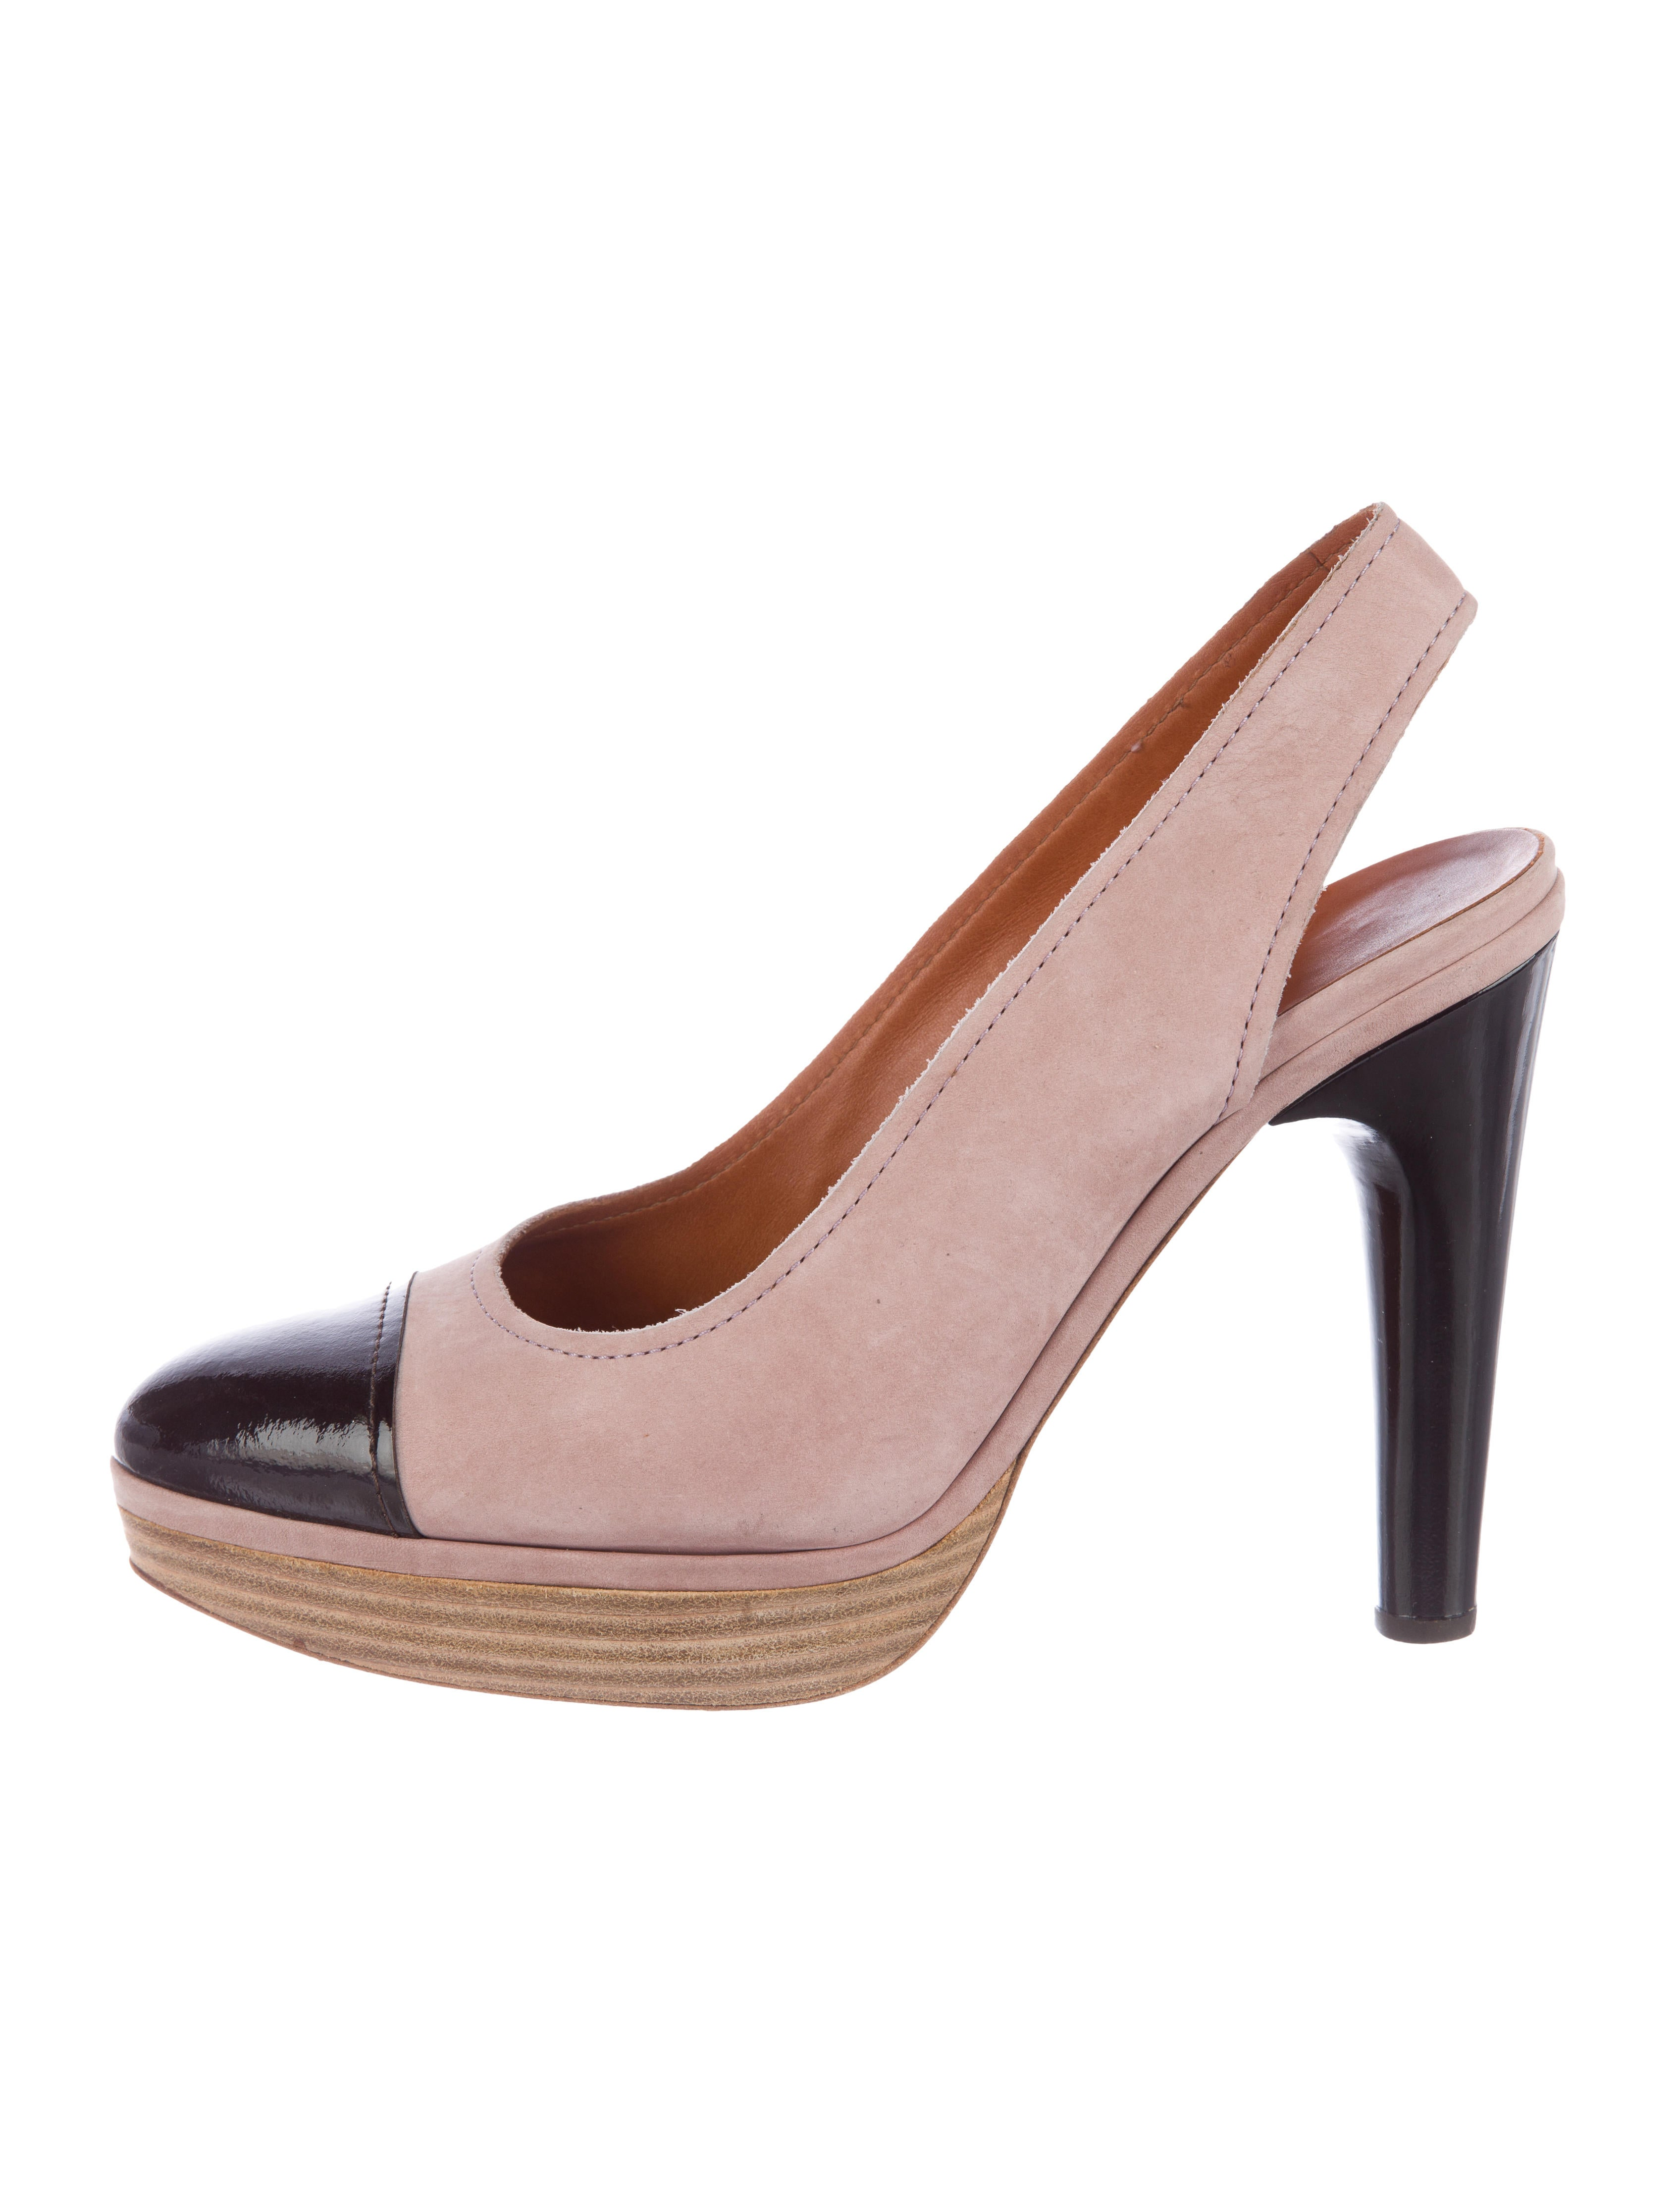 best prices for sale for cheap cheap online Lanvin Cap-Toe Slingback Pumps discount looking for sale amazon cheap buy authentic hEfDaKd9F